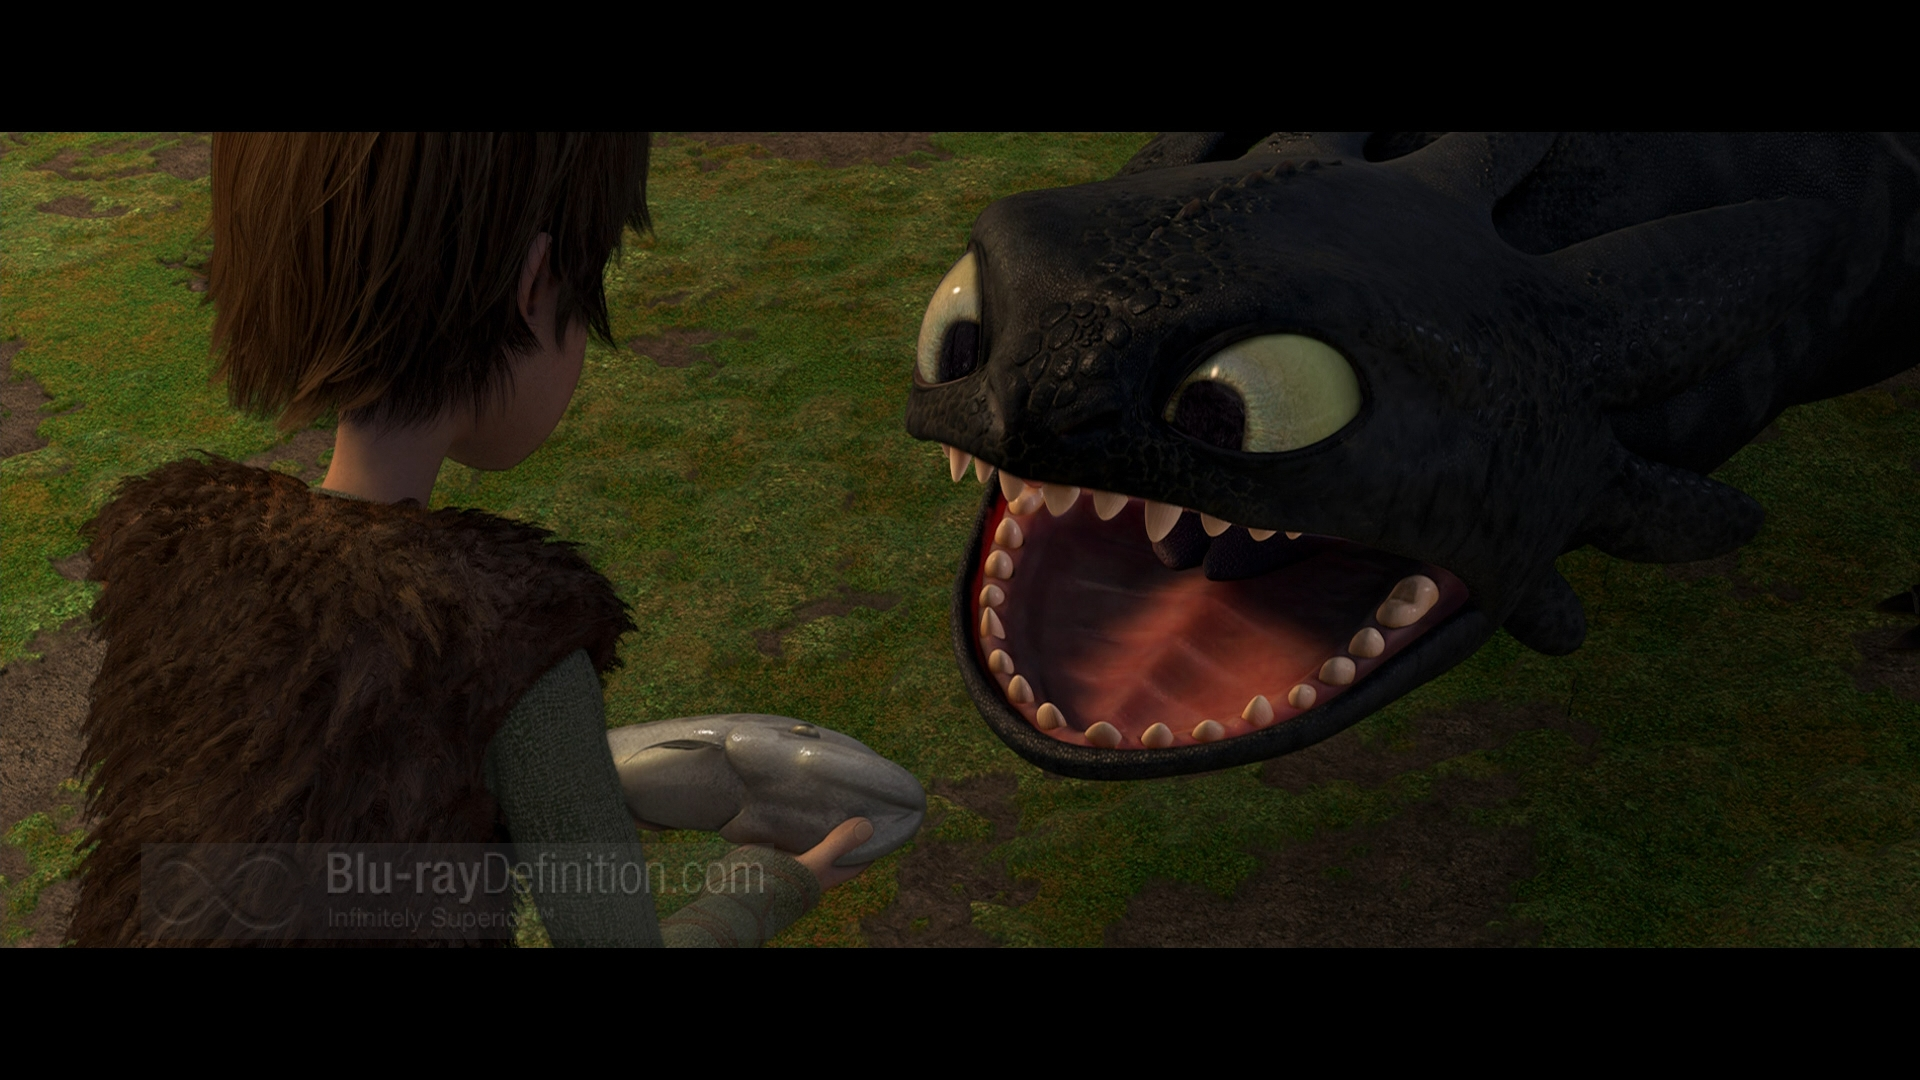 Wallpaper Hd How To Train Your Dragon Wallpaper 33191844 Fanpop